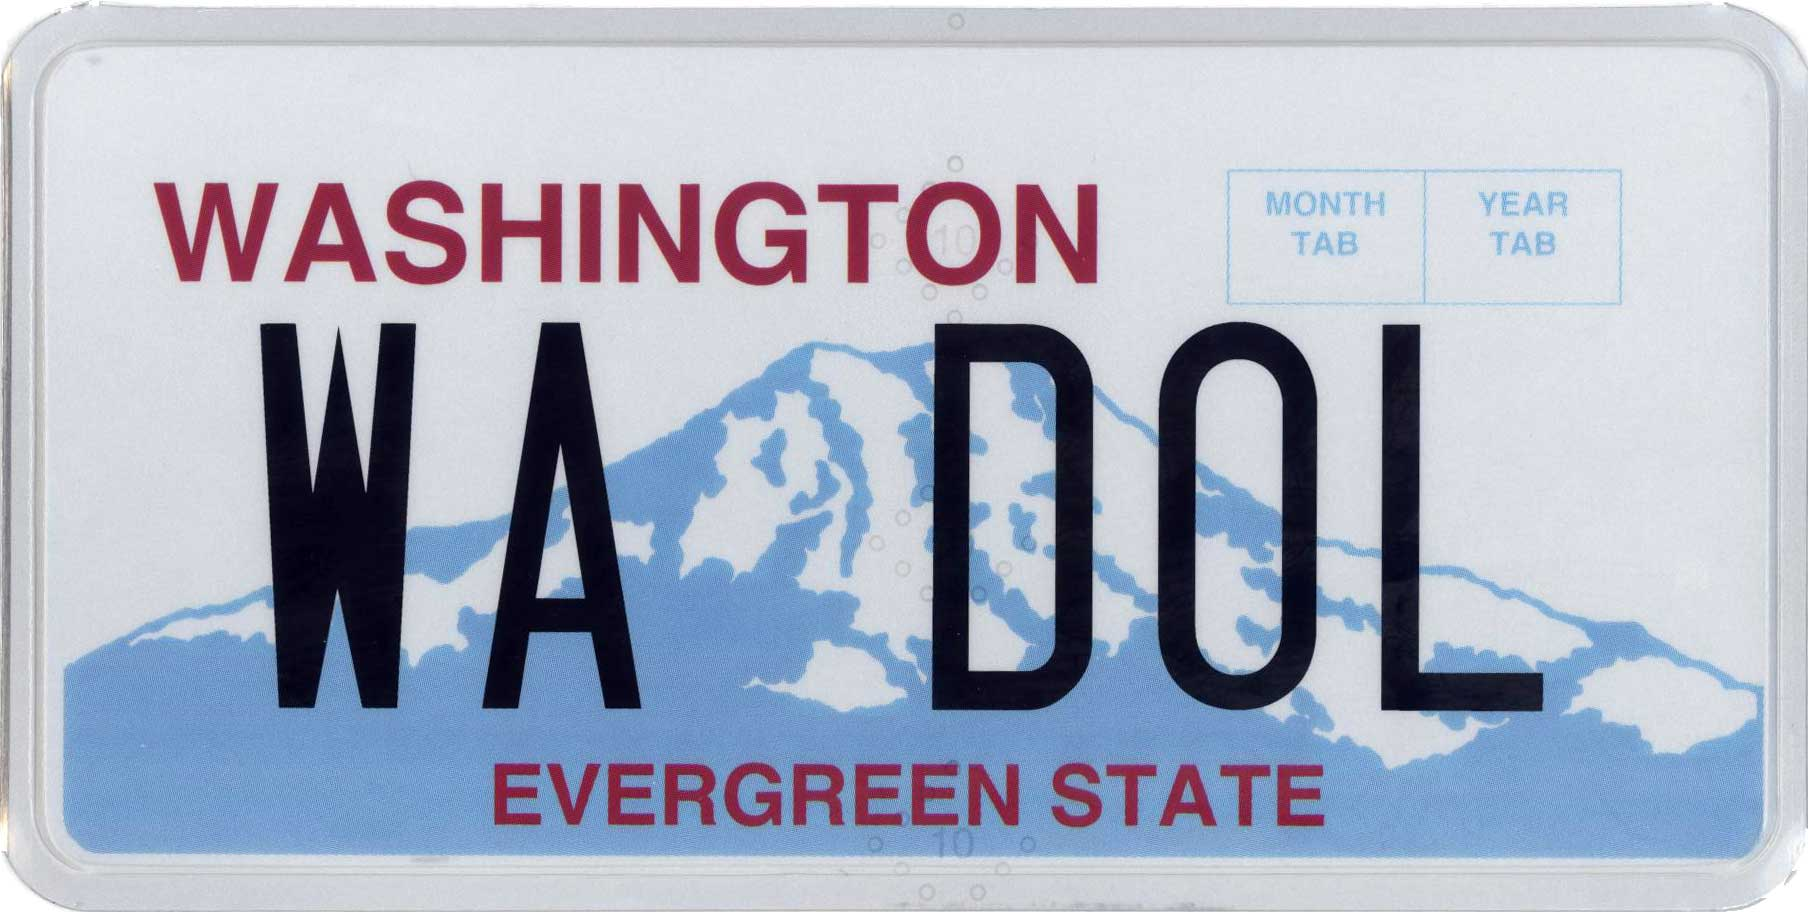 Personalized license plate fees increase by 10 dmv list for Washington state fishing license cost